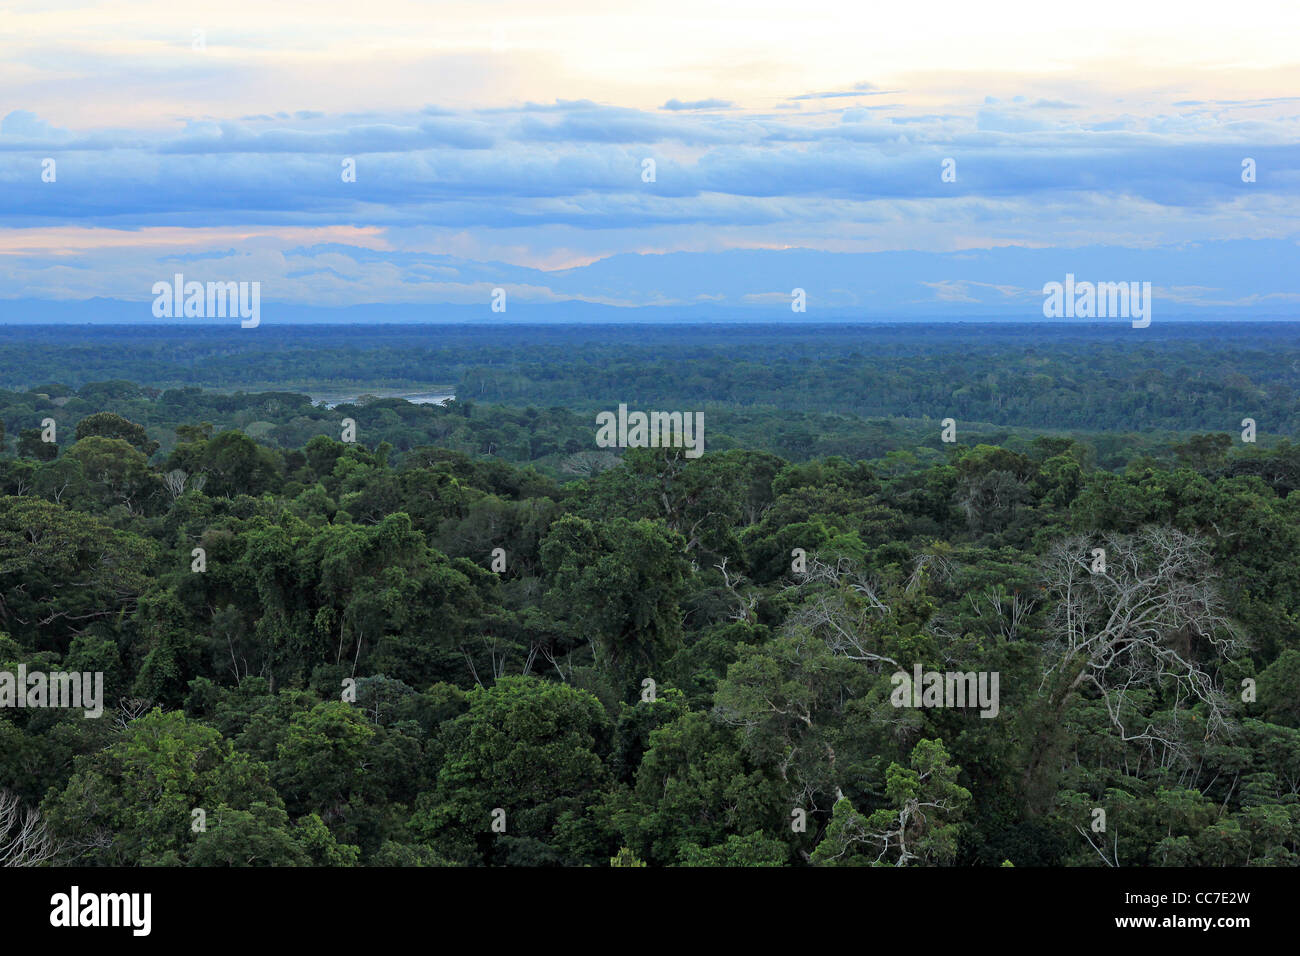 Primary Rain Forest viewed from the air with the Madre de Dios and Andes Mountains in background (Peru) - Stock Image